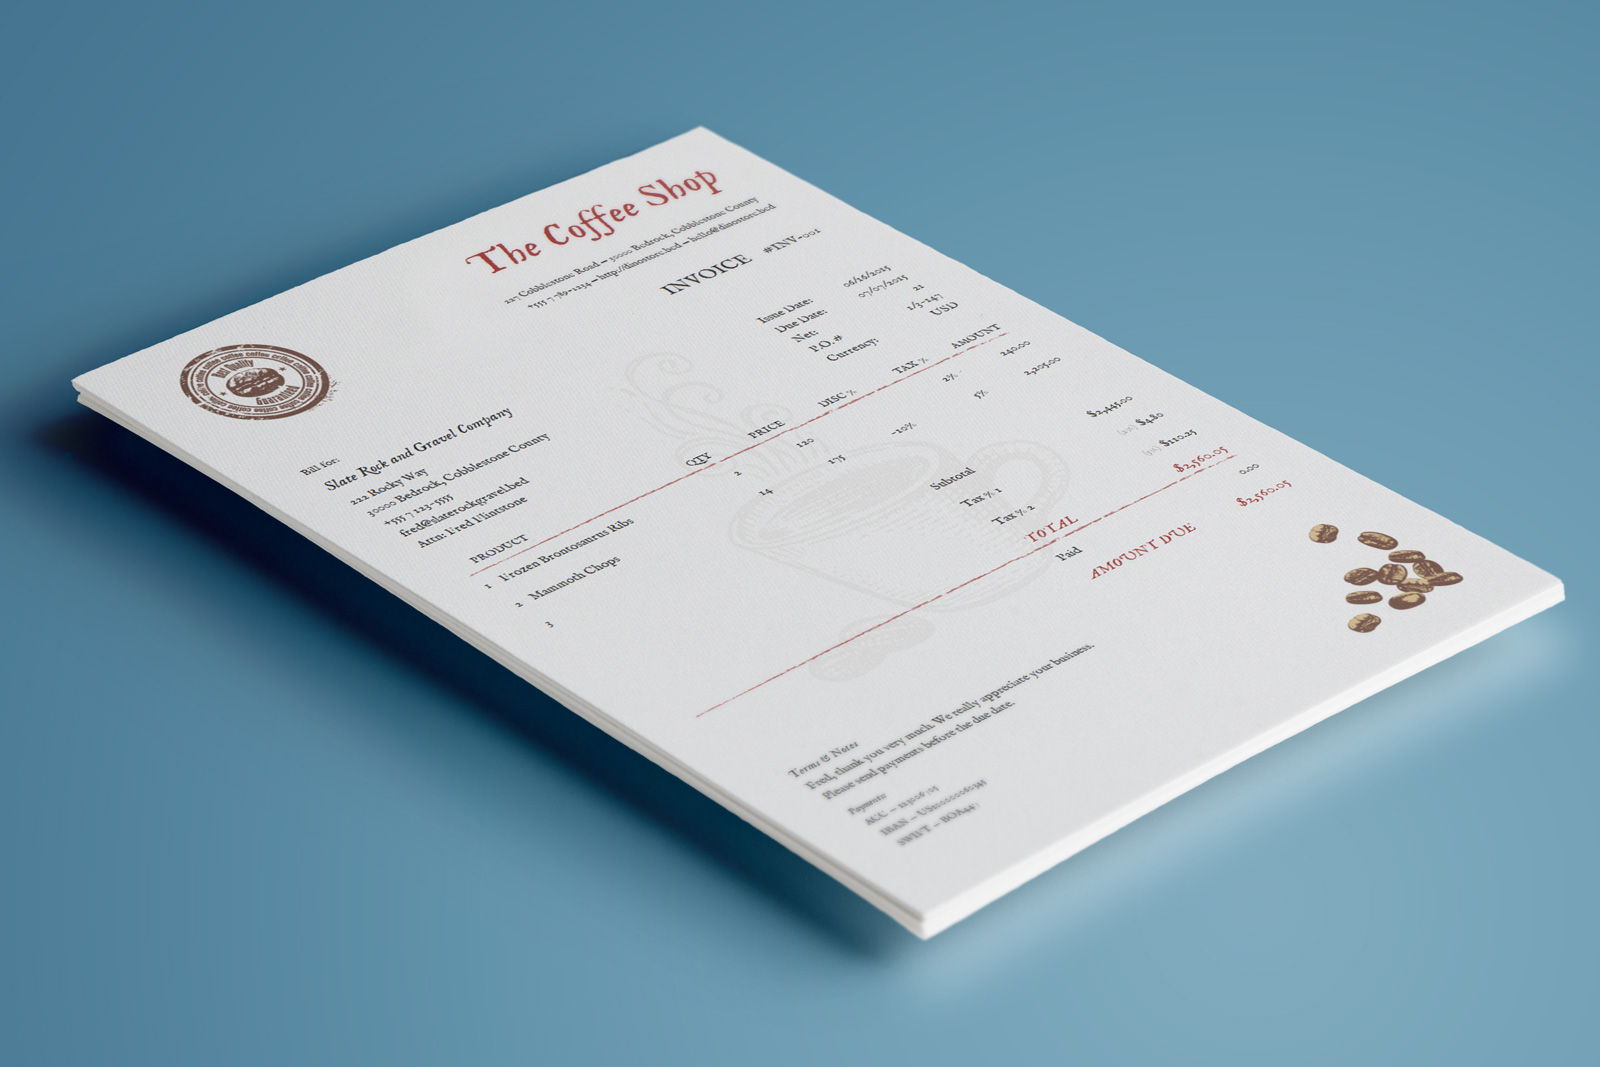 Coffee Invoice Template     The Coffee invoice template has a warm sensibility  beautiful  typography  and a very clean